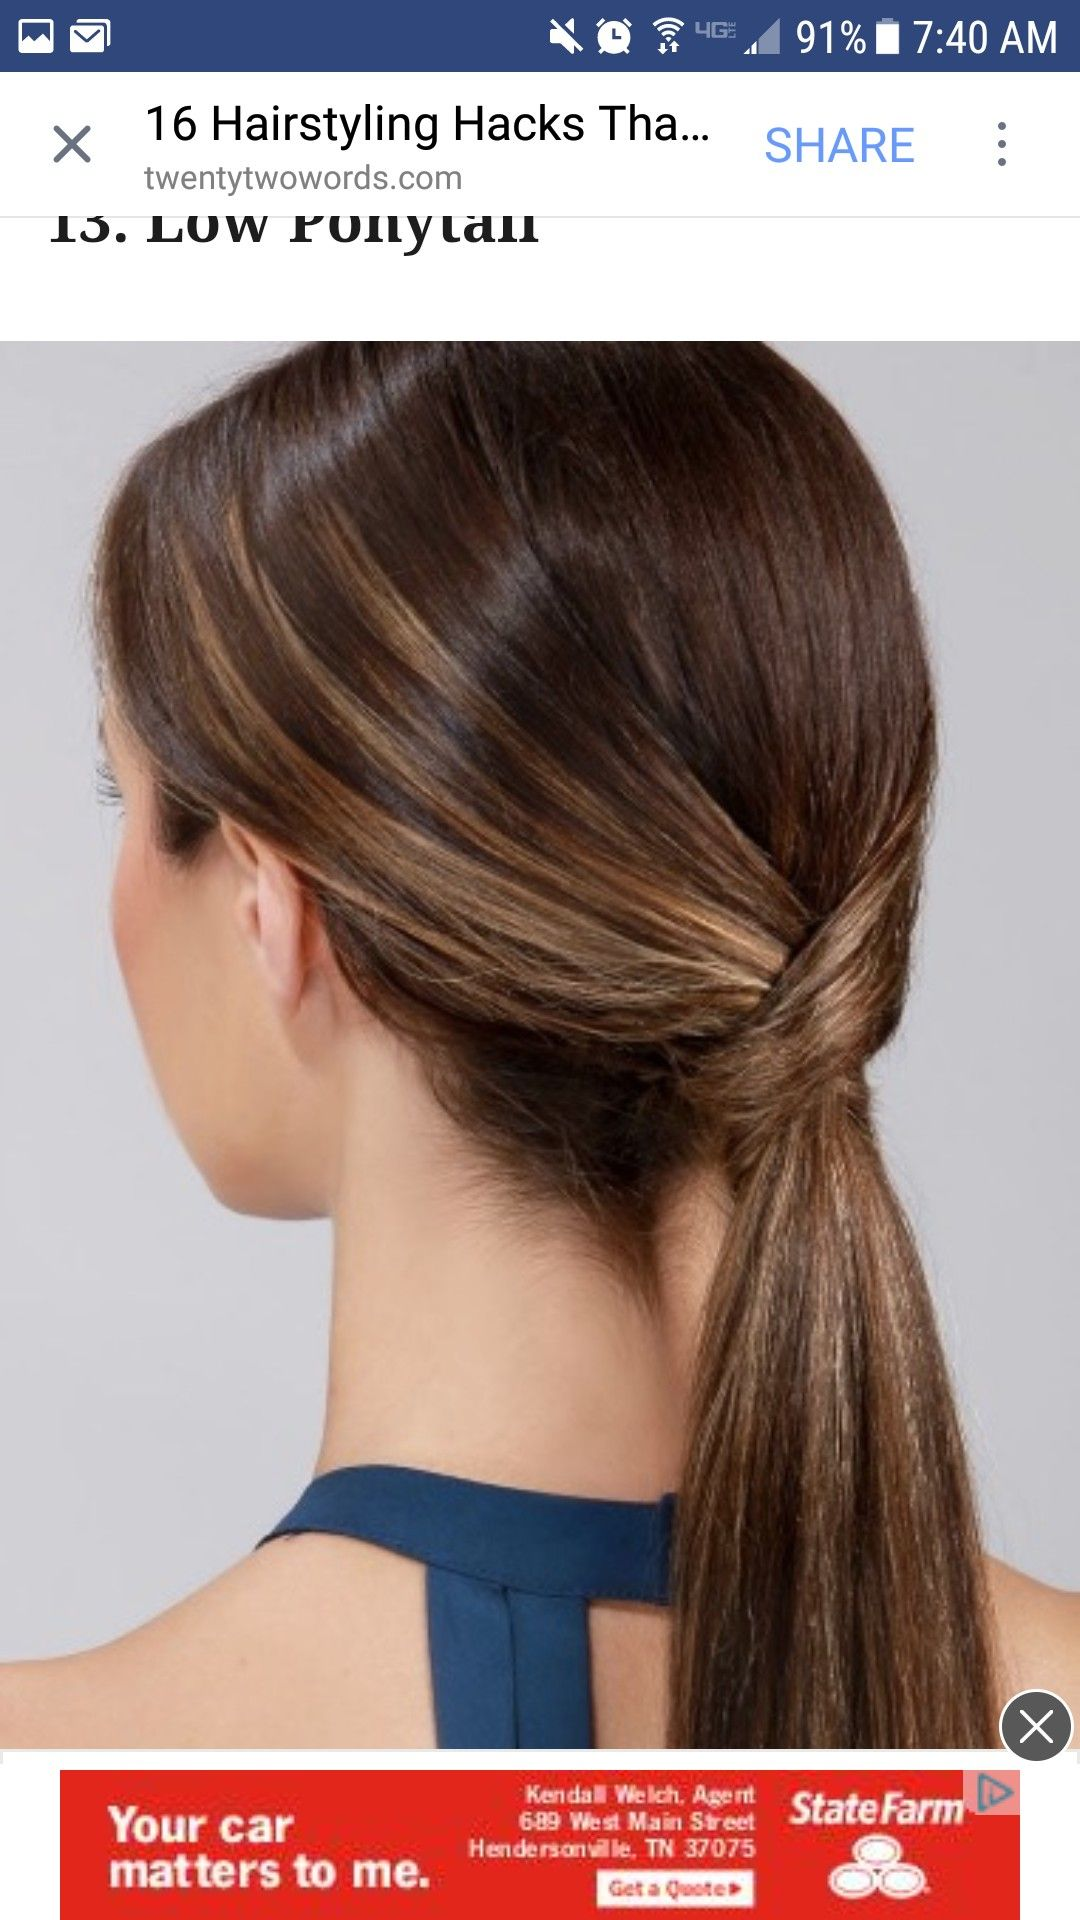 Pin by Morgan Young on Hair | Cute ponytail hairstyles, Interview hairstyles, Job interview ...